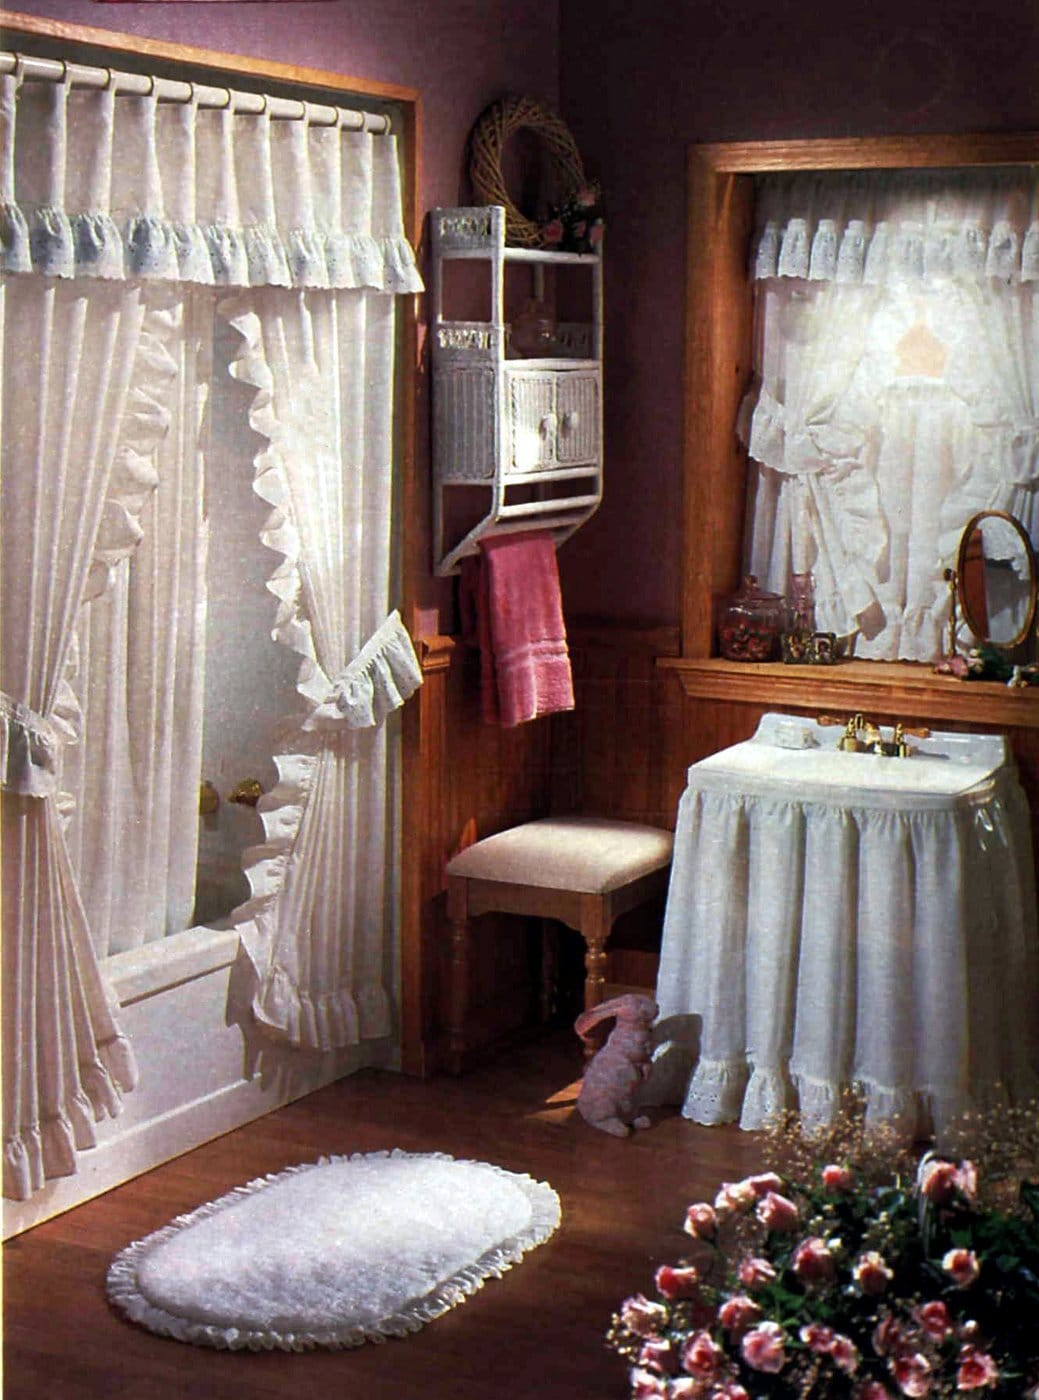 Frilly white vintage bathroom decor from the eighties